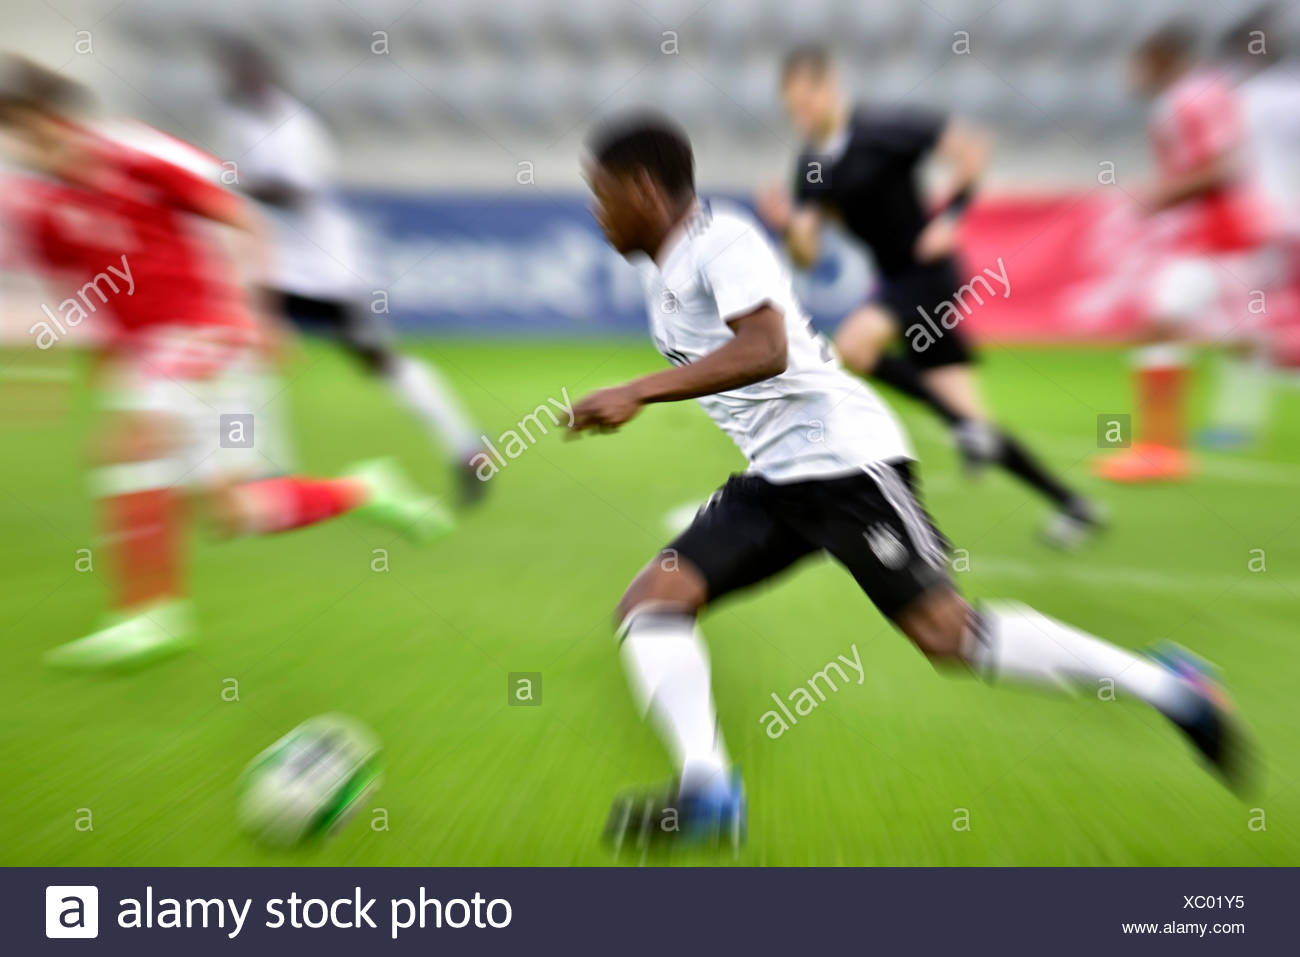 Football game, football player in motion, Biel, Switzerland - Stock Image